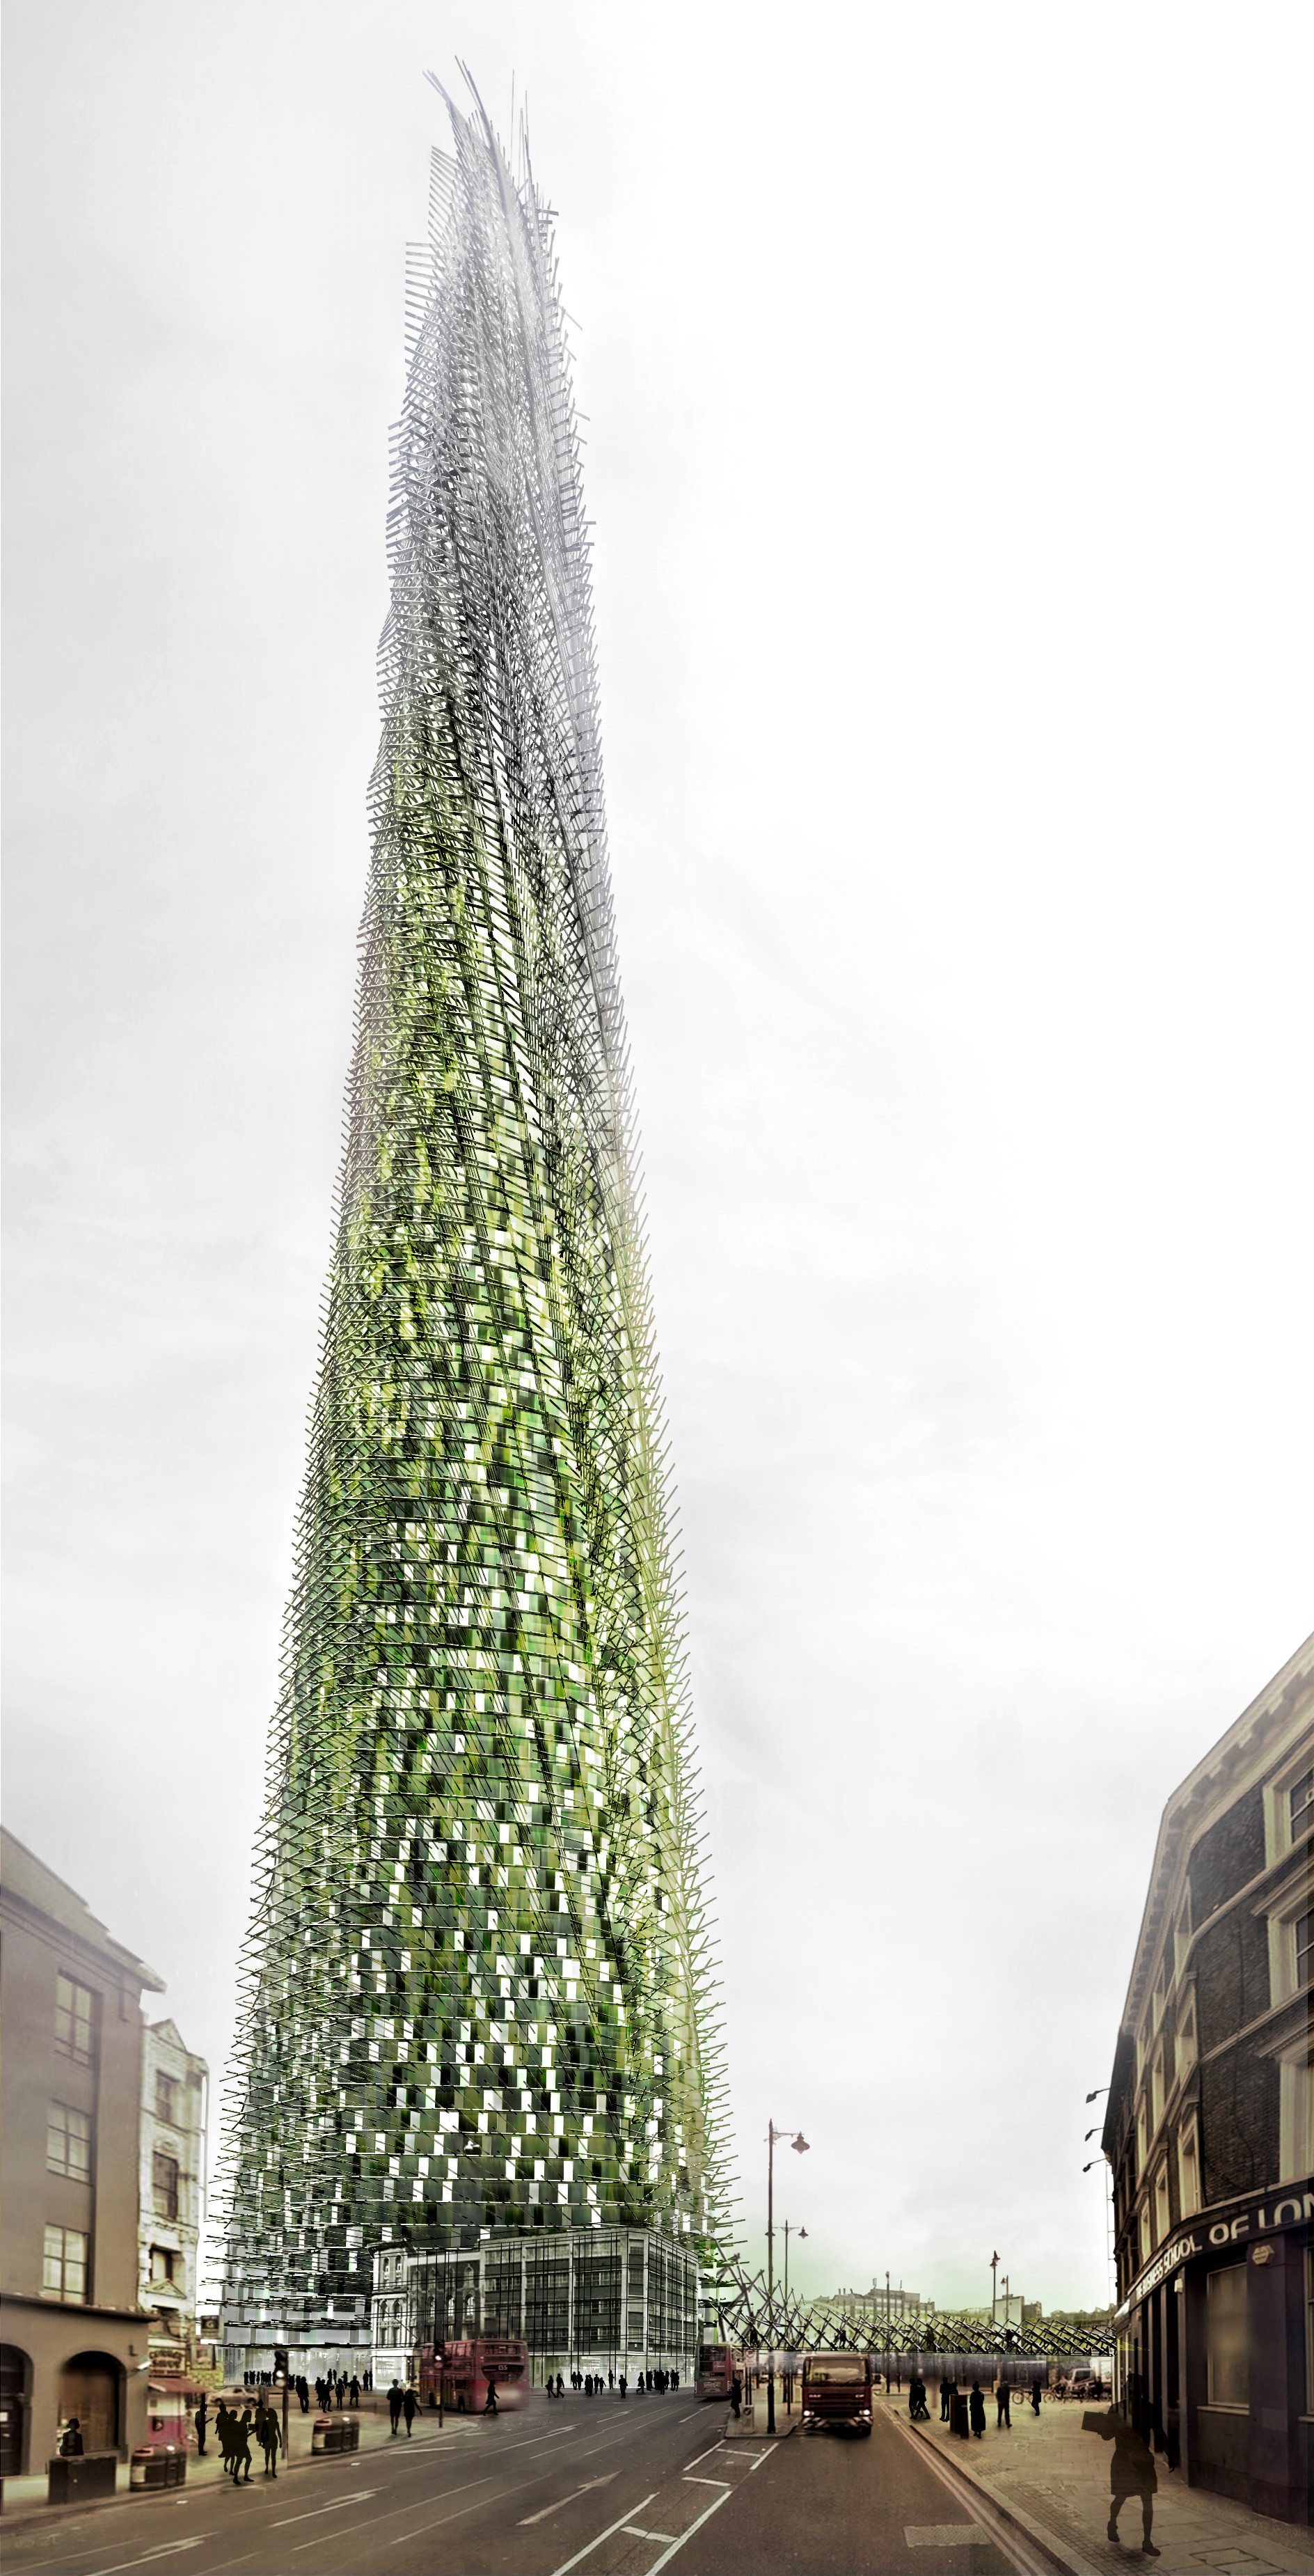 Architecture Of A Mom 15 Easy Diy Gift Ideas: Organic London Skyscraper Grows As Residents Recycle